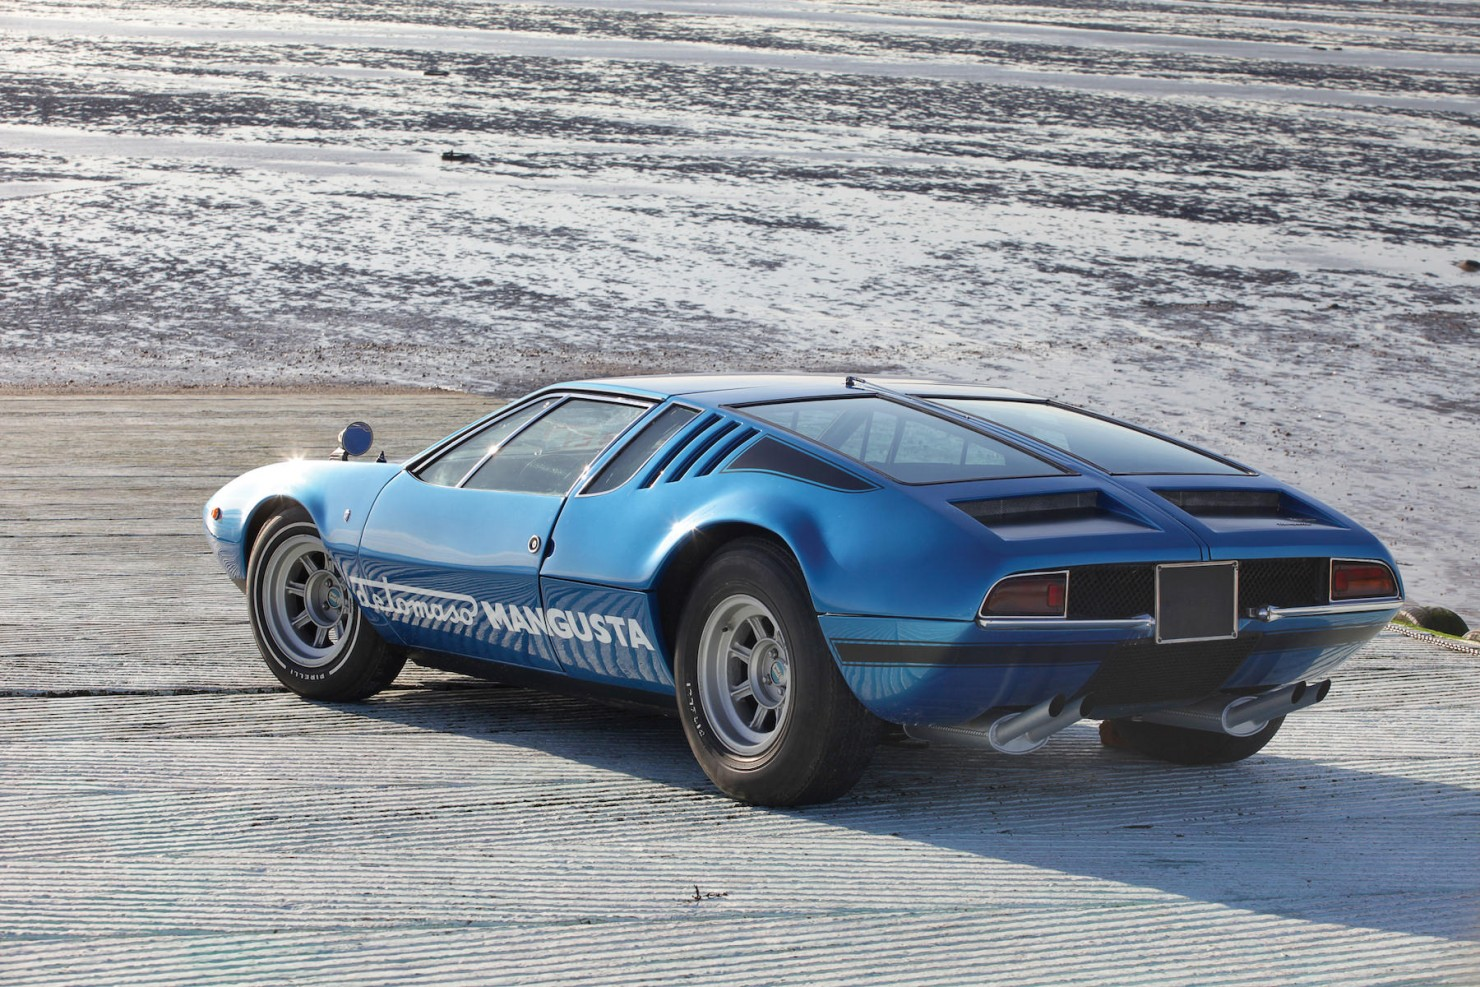 1969 De Tomaso Mangusta HD Wallpapers Download free images and photos [musssic.tk]